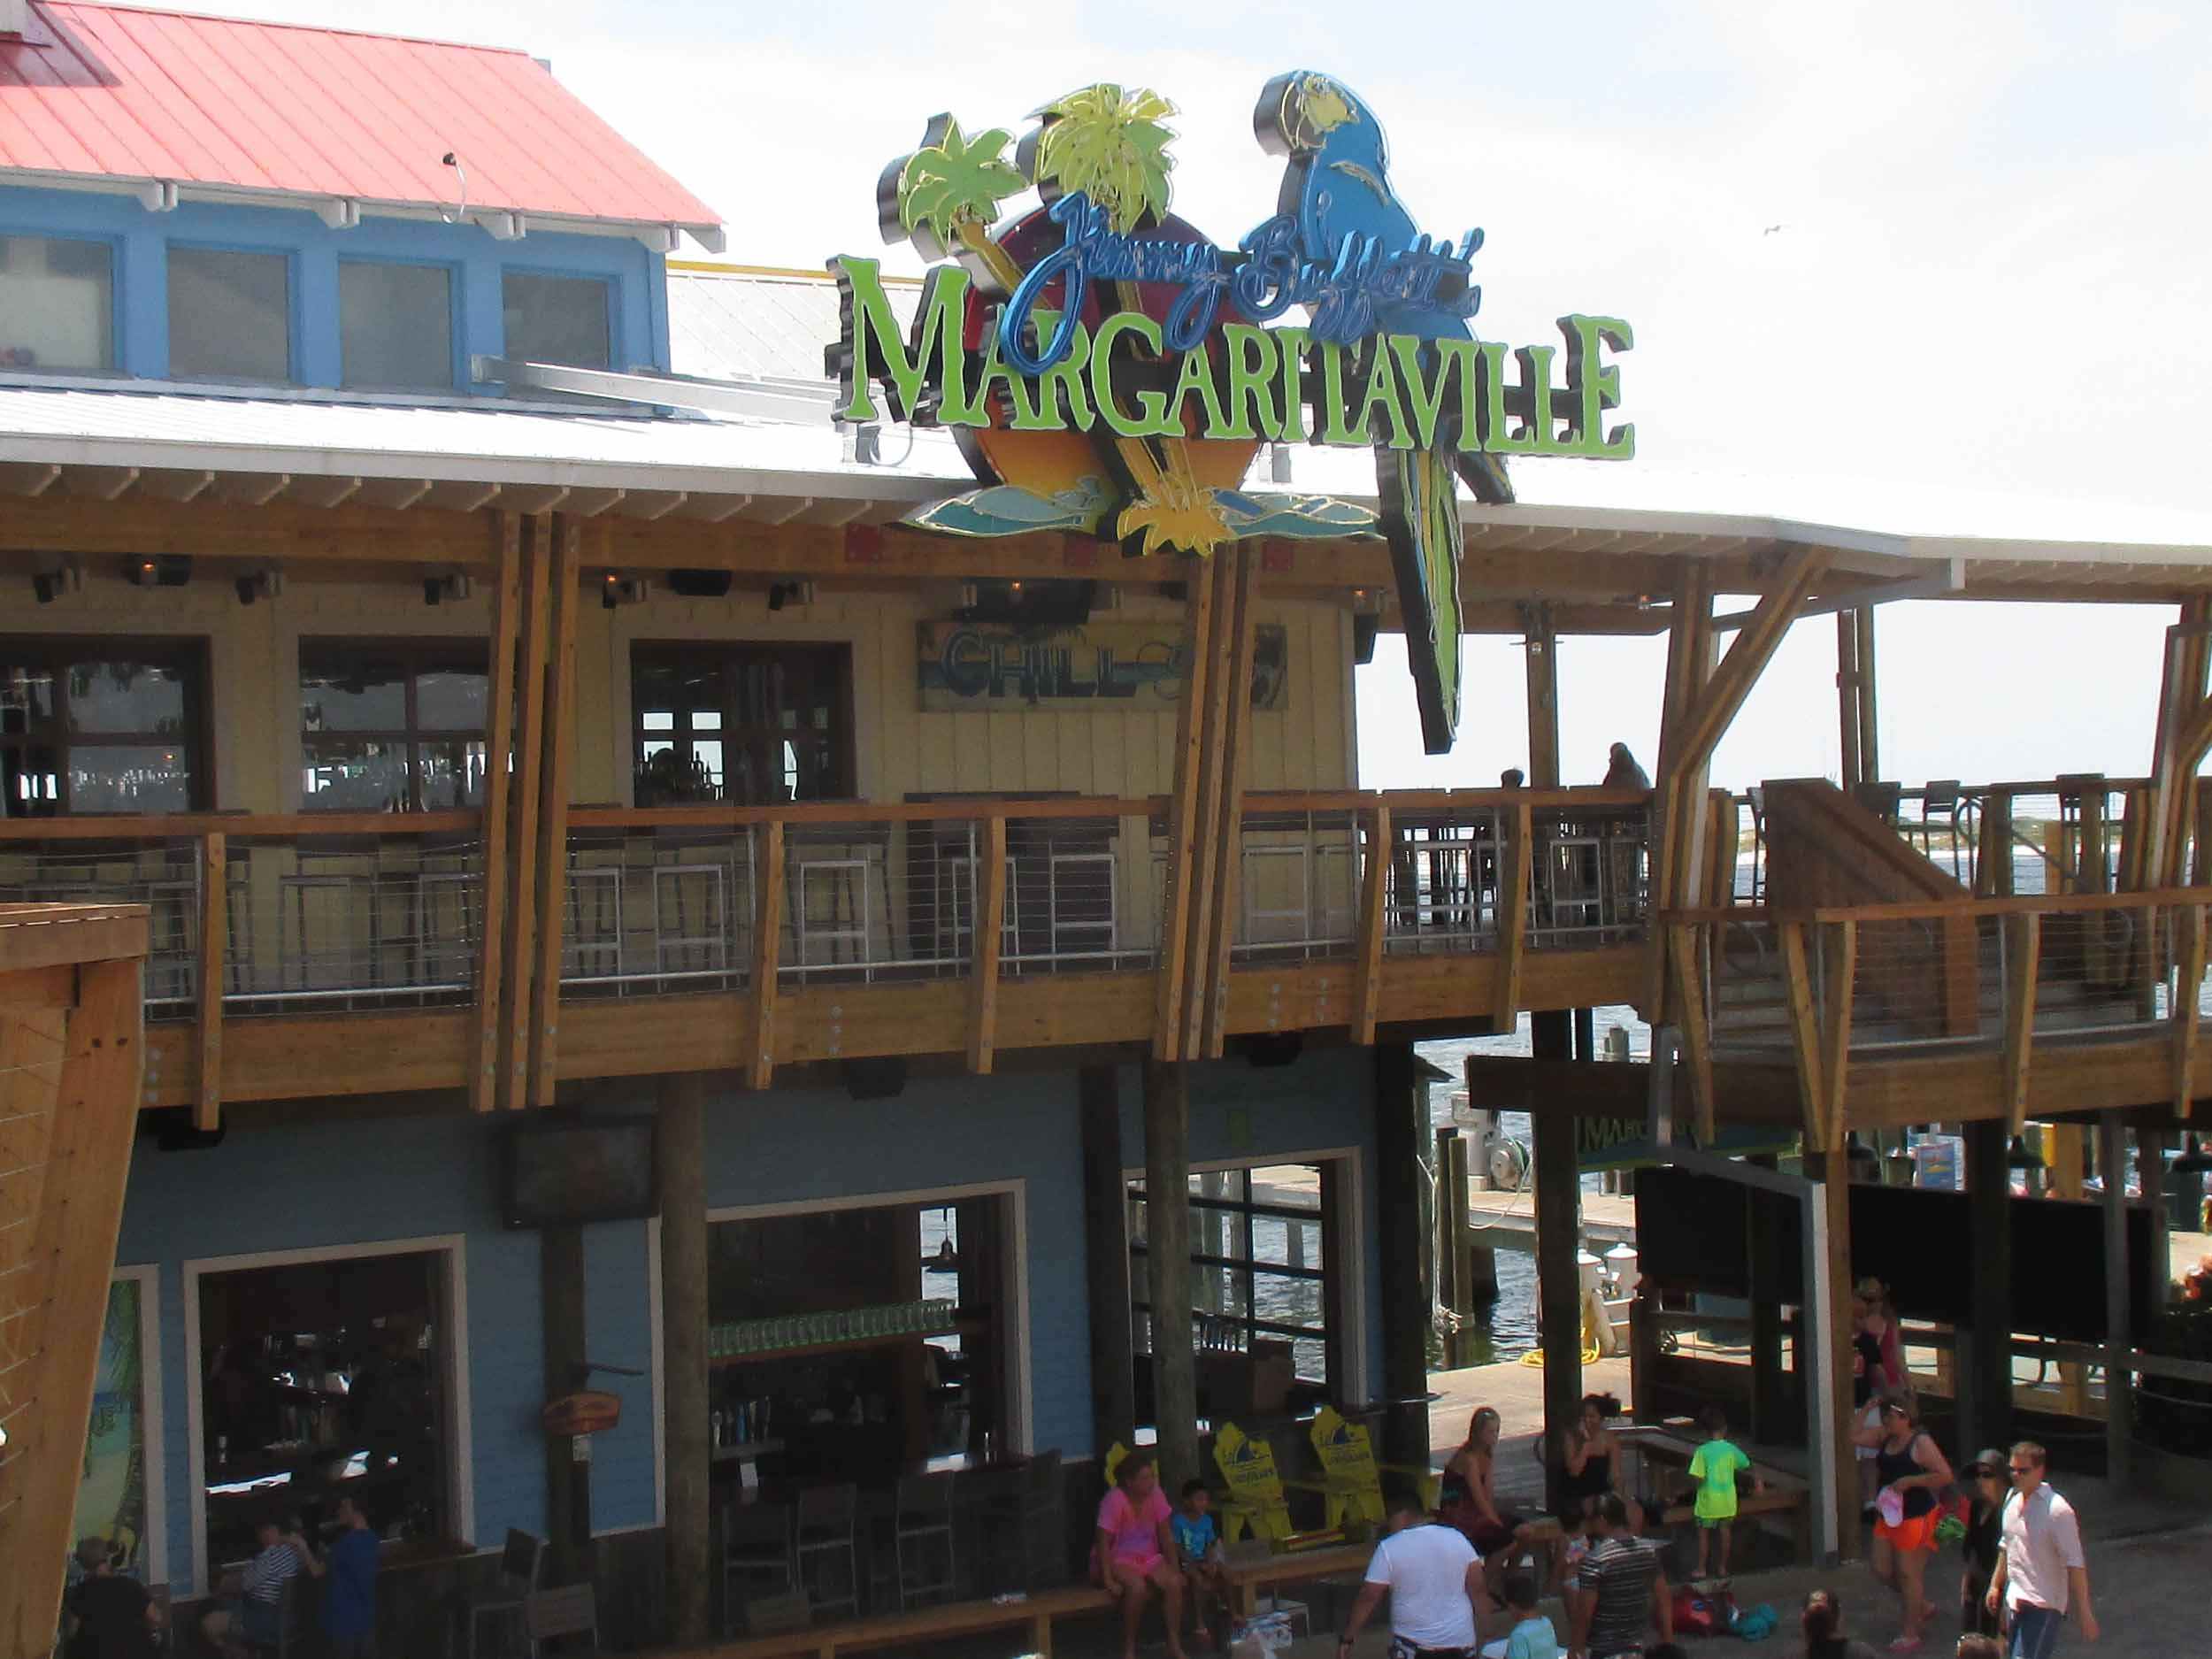 Jimmy Buffett's Margaritaville Patio